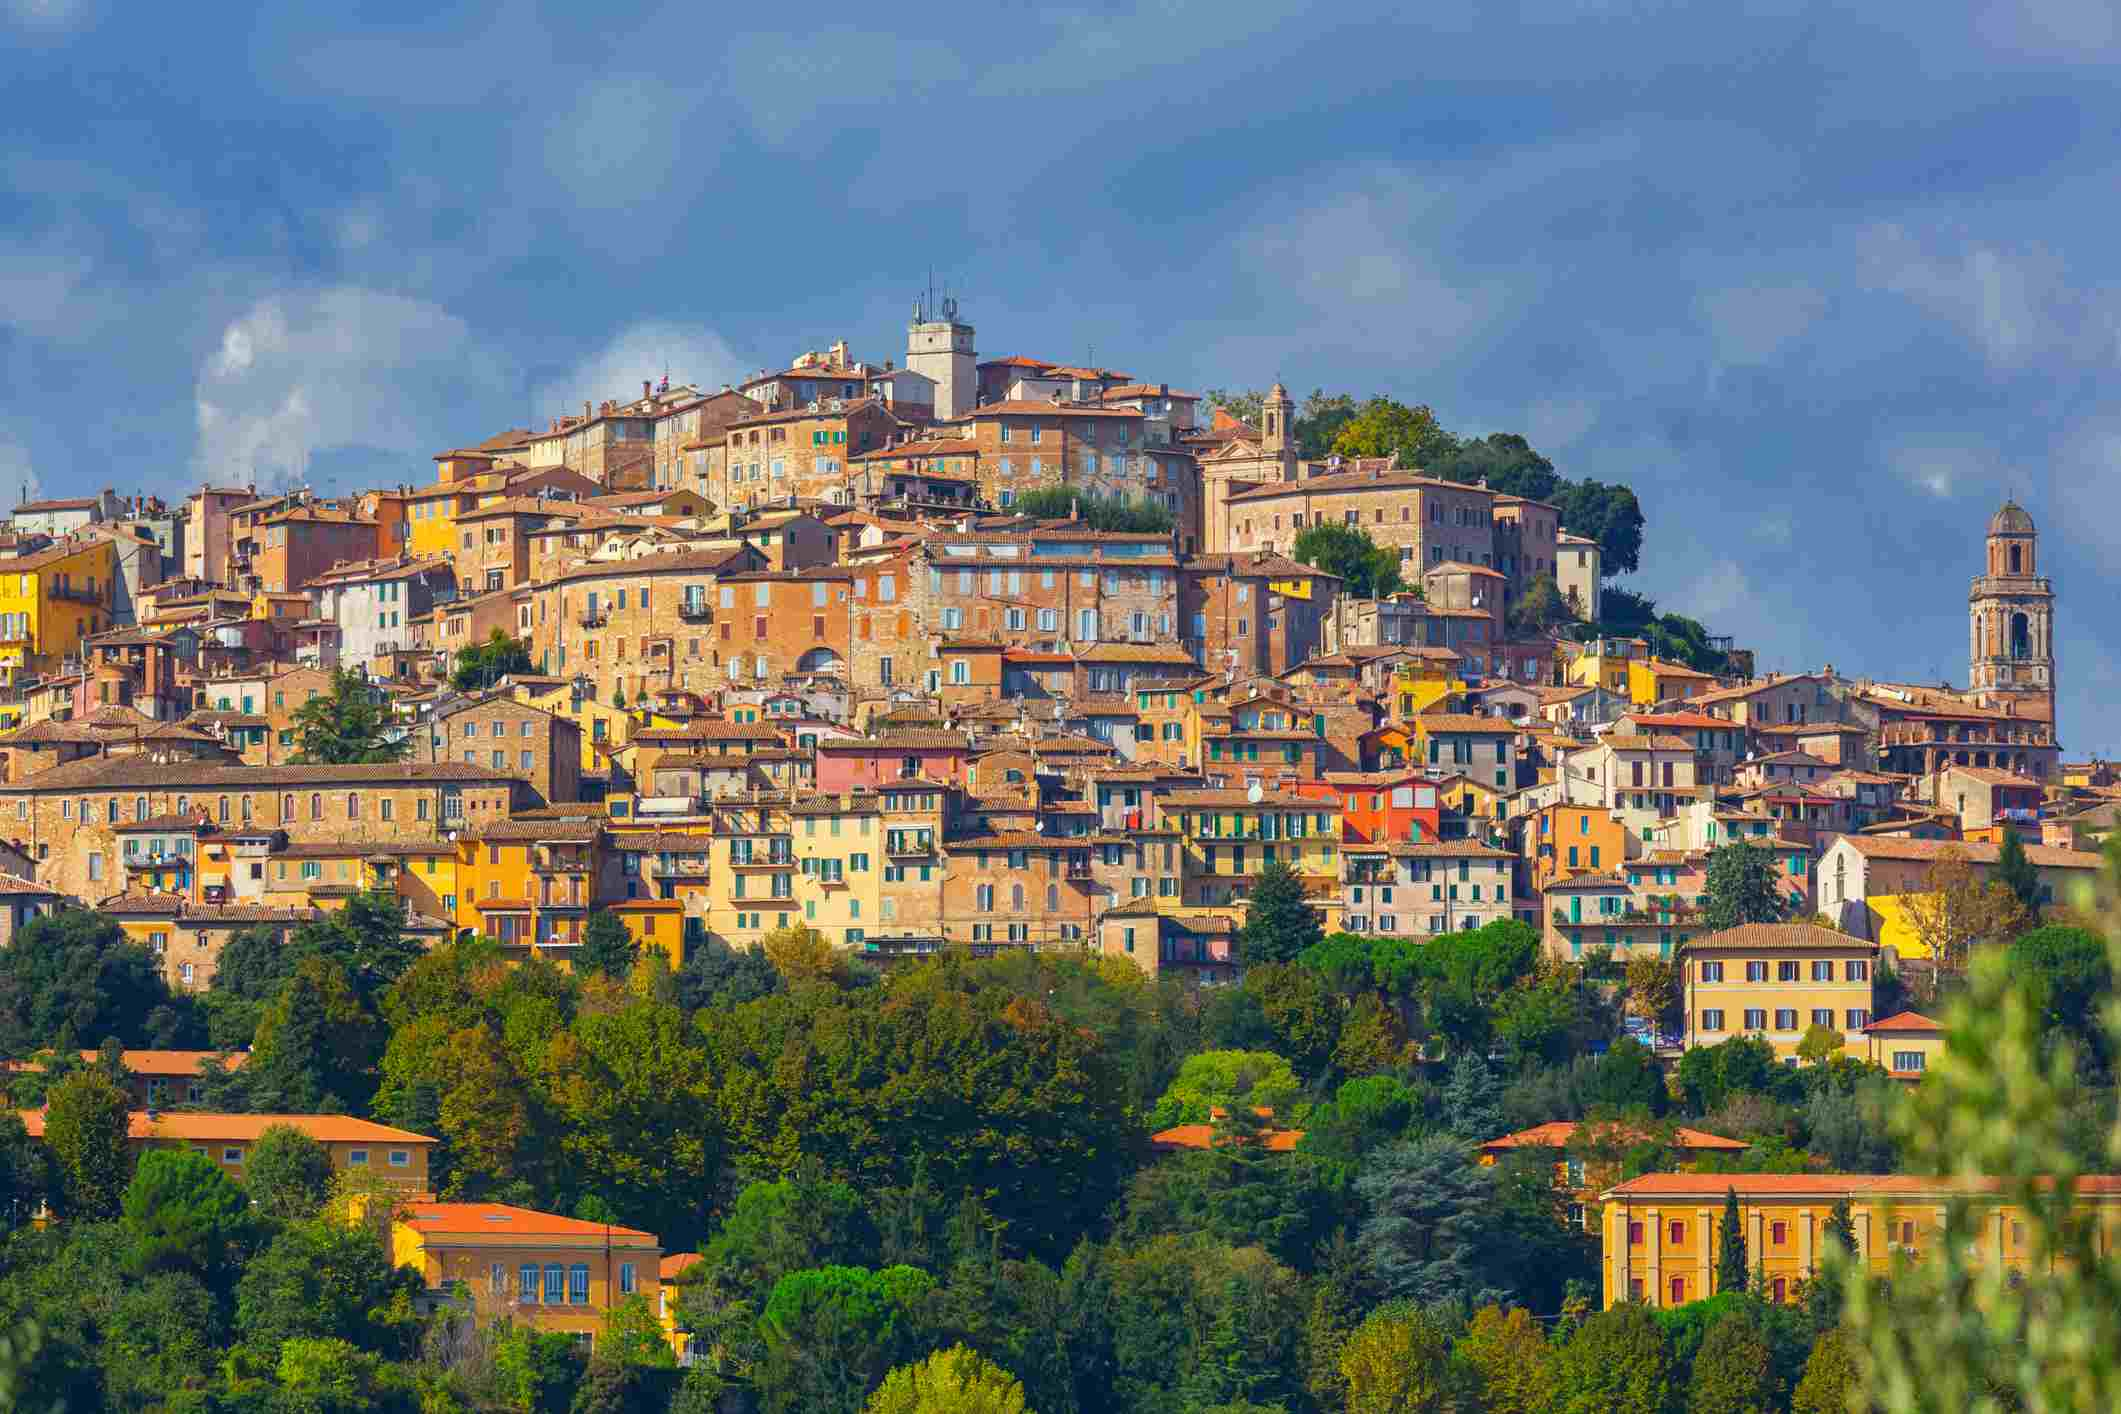 How To Get From Rome To Orvieto